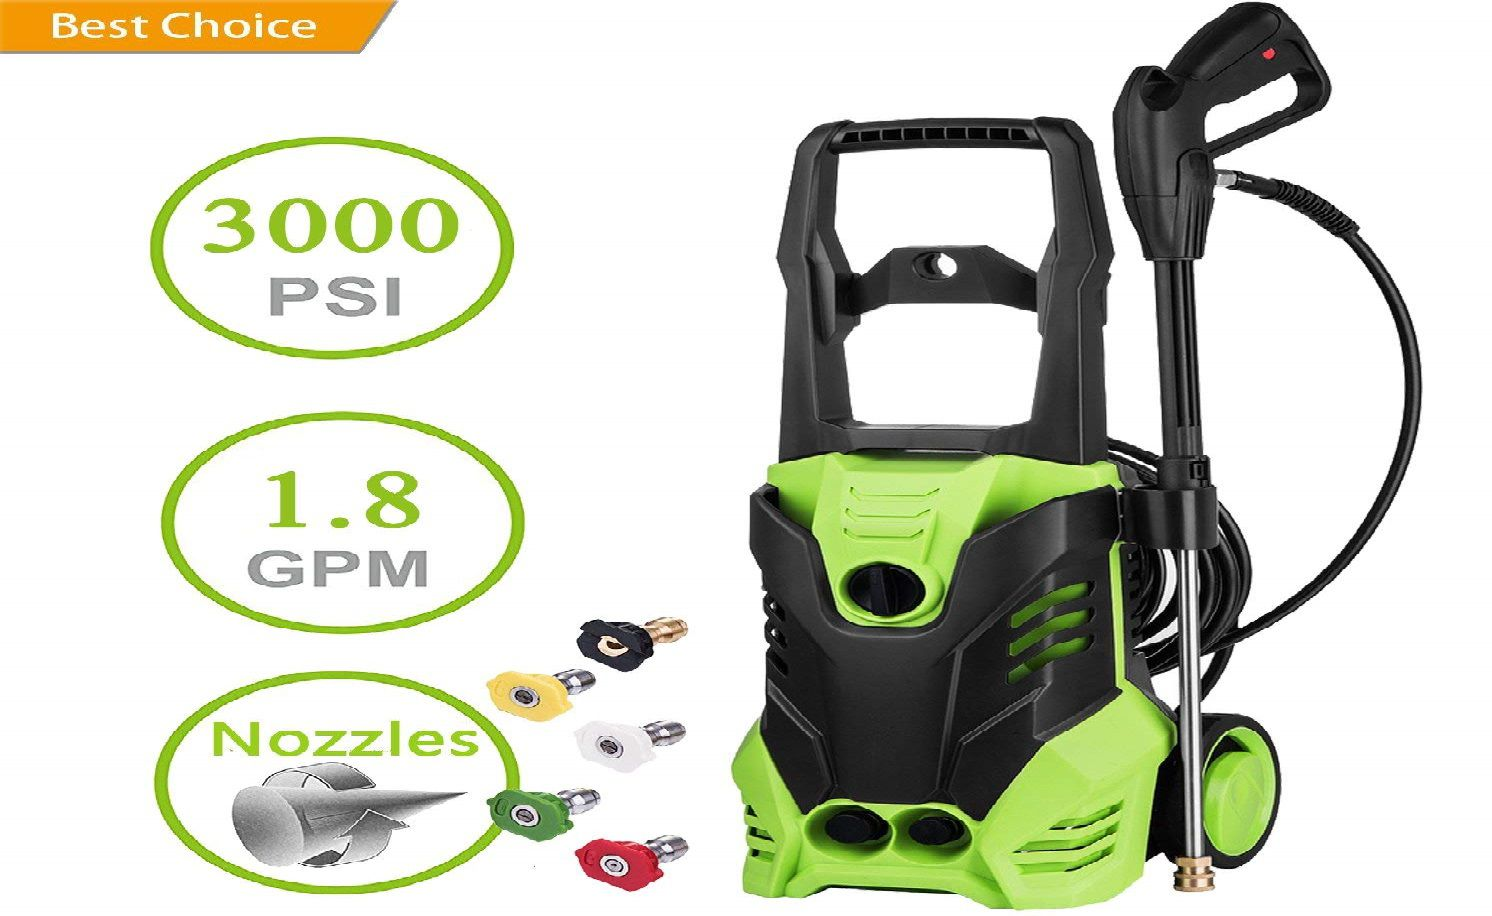 Binxin 2030 PSI Electric Power Washer